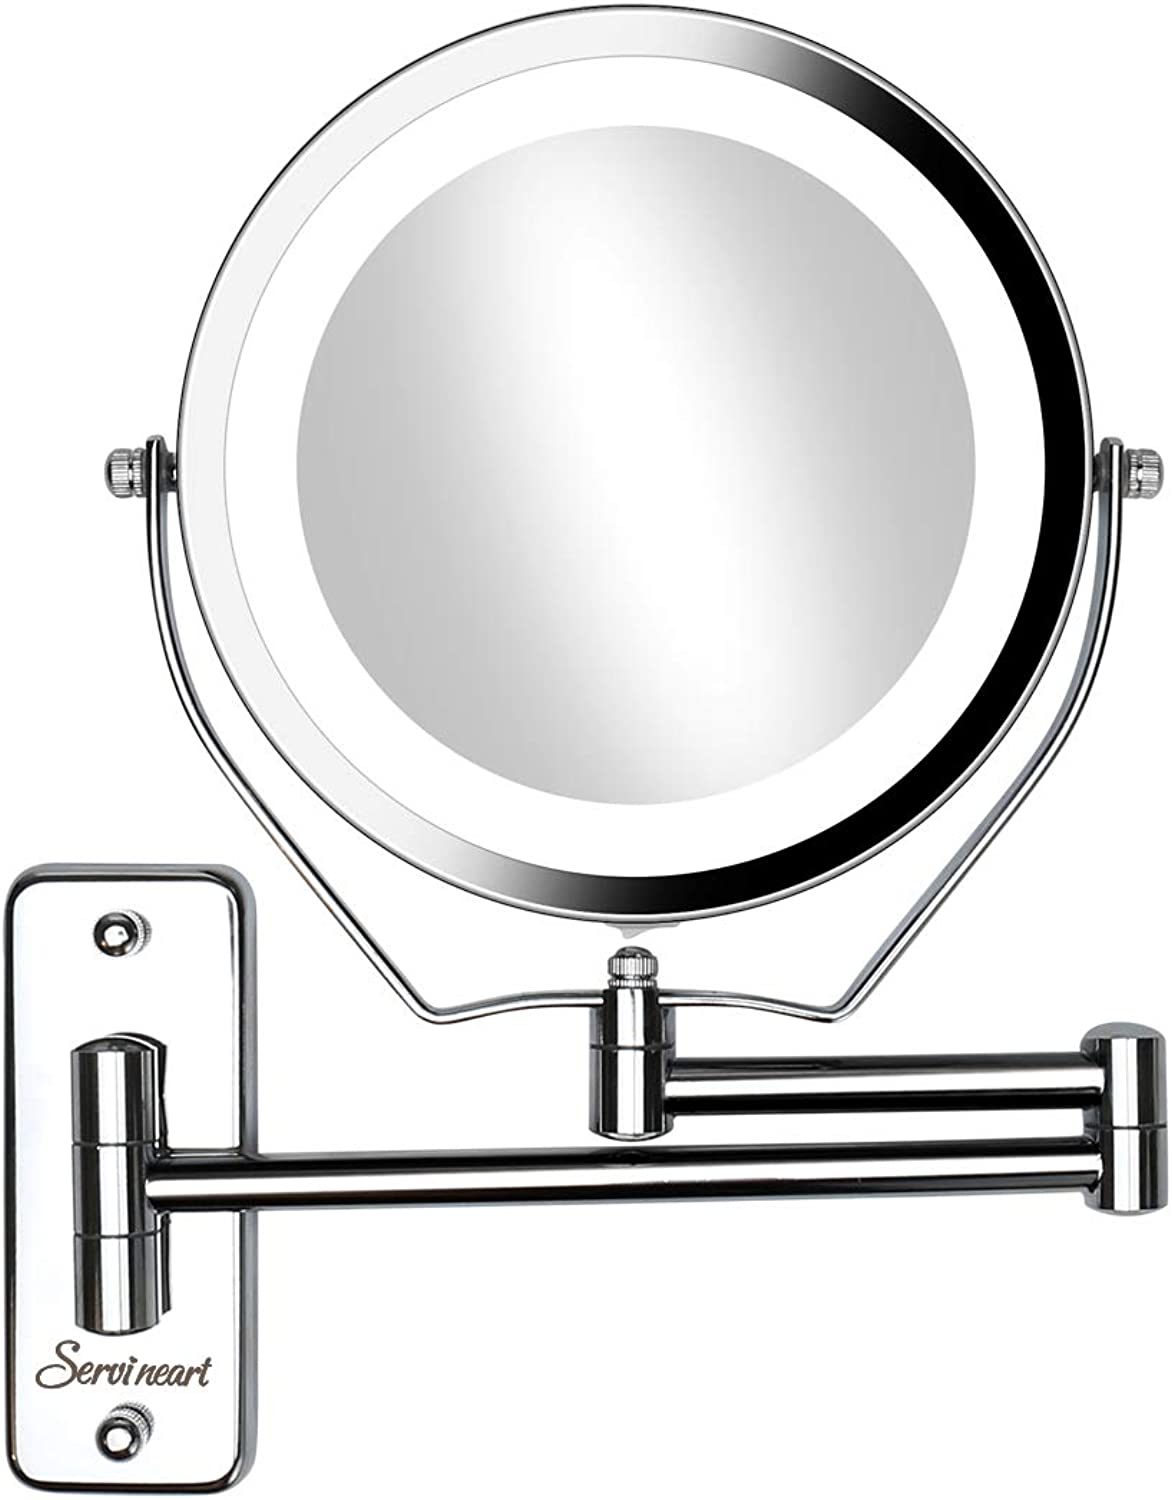 Servineart 7  1X &10X Magnifying Double Sided Vanity Makeup Mirror Light, Wall Mount, Round, Chrome